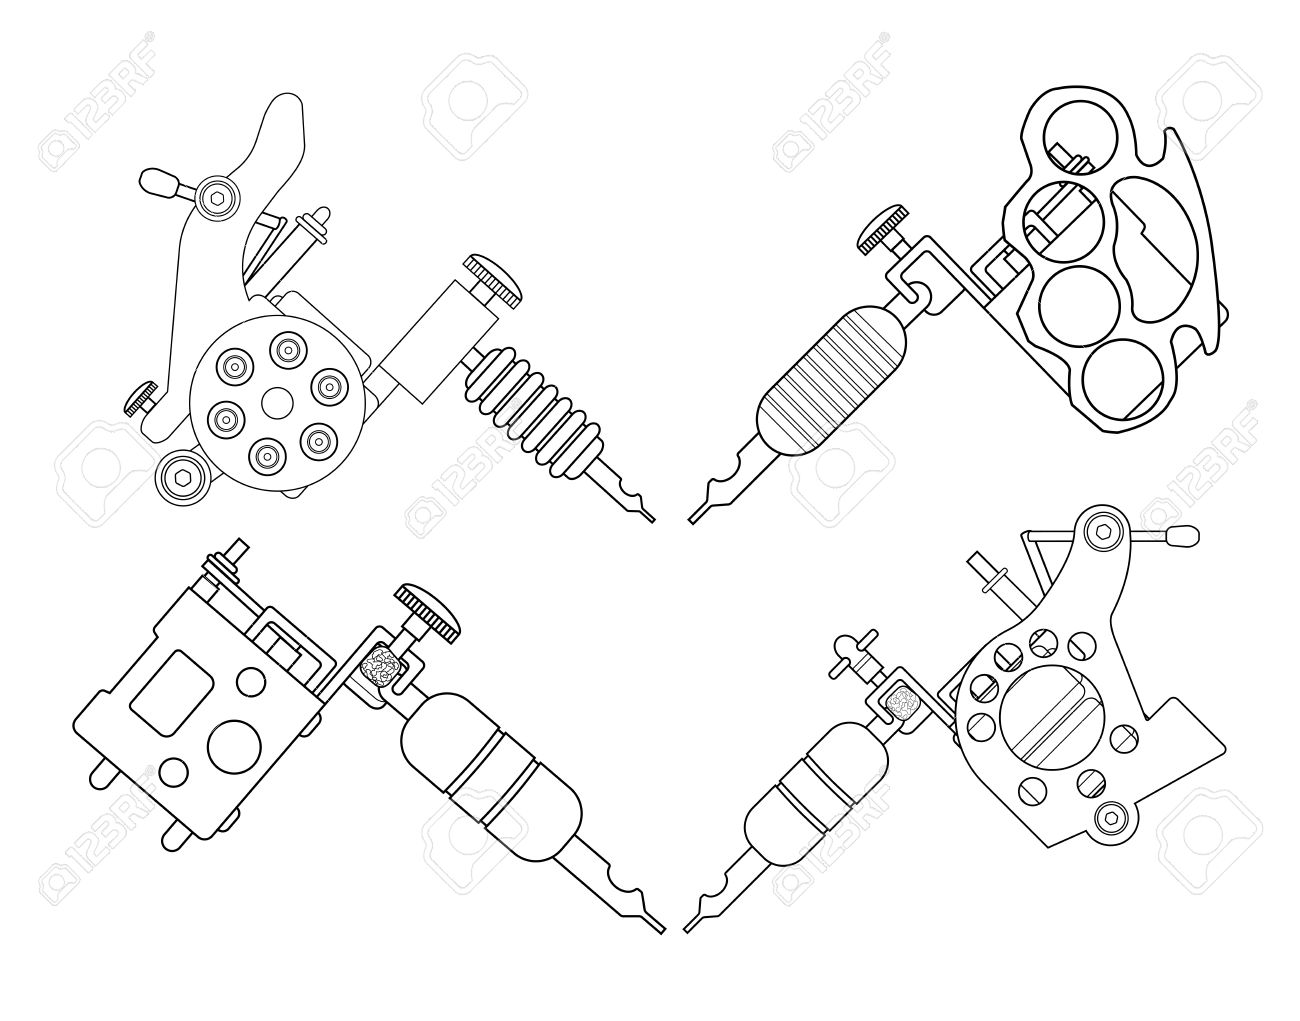 set of 4 different style realistic tattoo machines icons revolver Tables Clip Art Black and White Card line art illustration isolated on white set of 4 different style realistic tattoo machines icons revolver tattoo machine knuckle duster